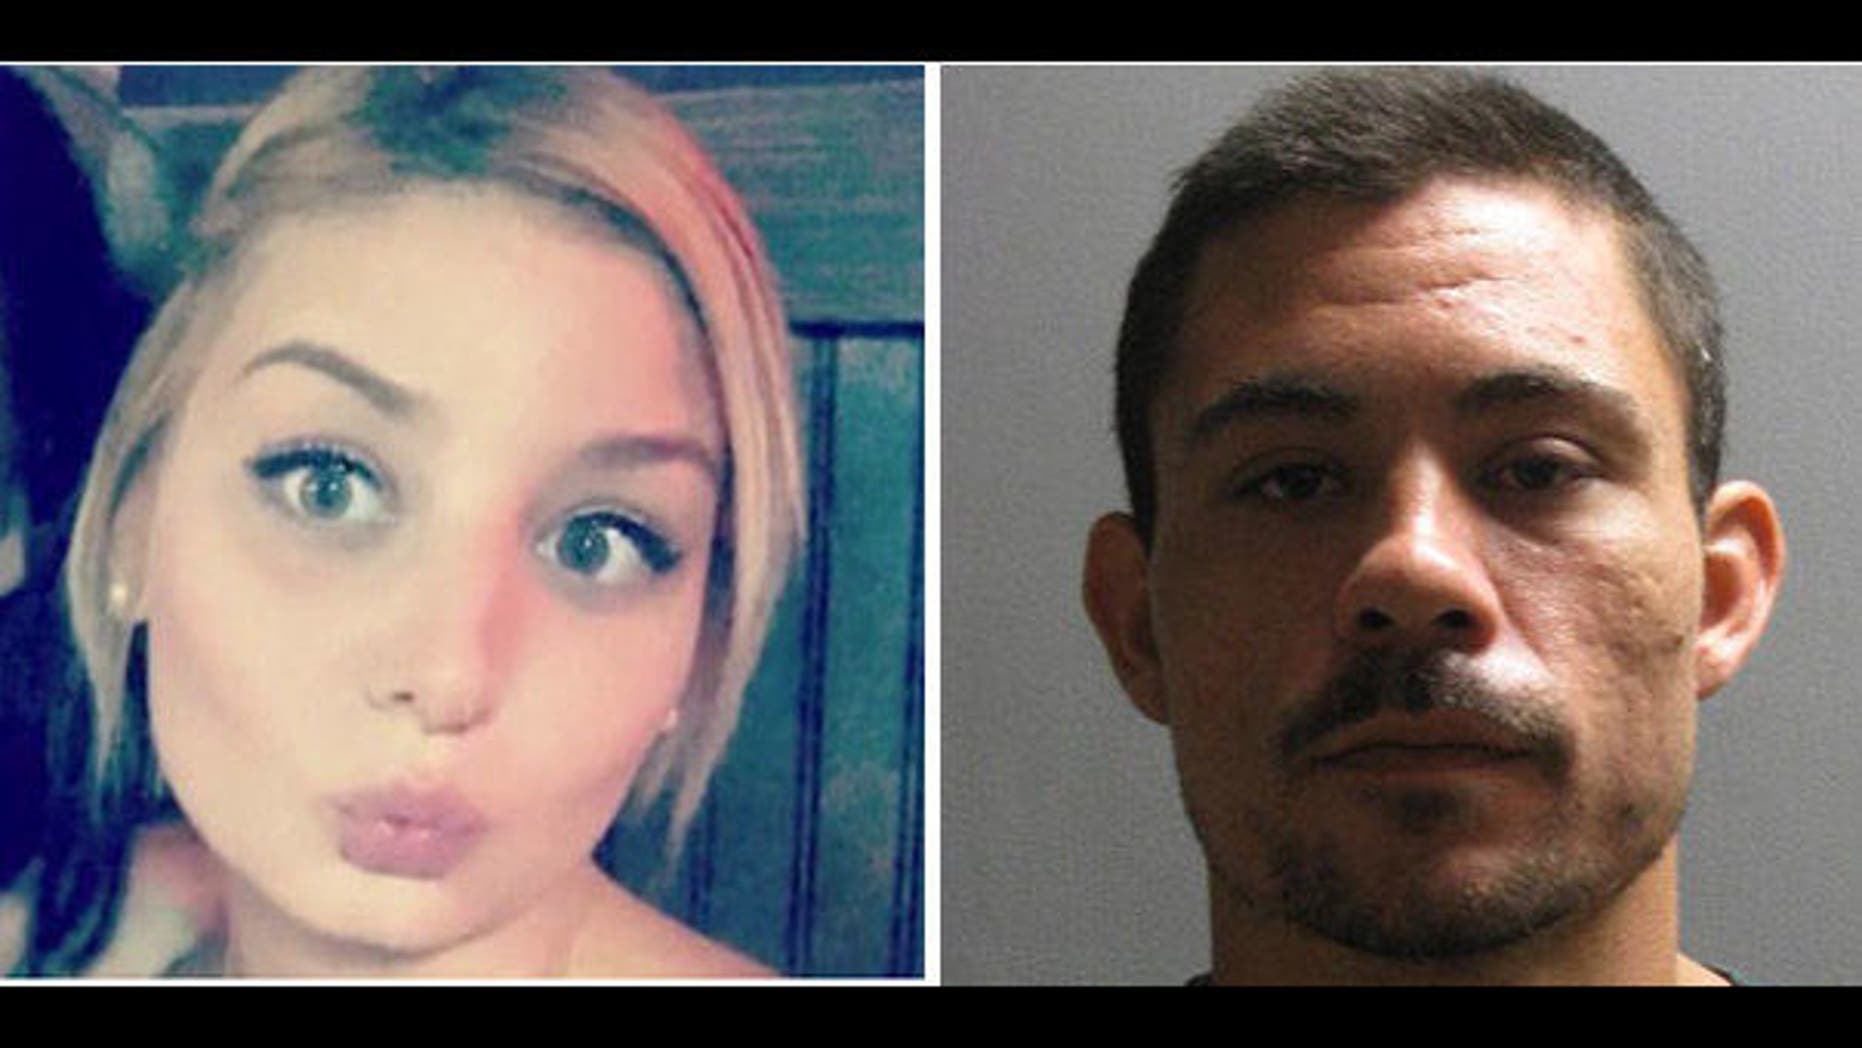 Savannah Gold, 21, was reported missing Wednesday. Her off-an-on boyfriend Lee Rodarte, 28, has been charged with her murder.